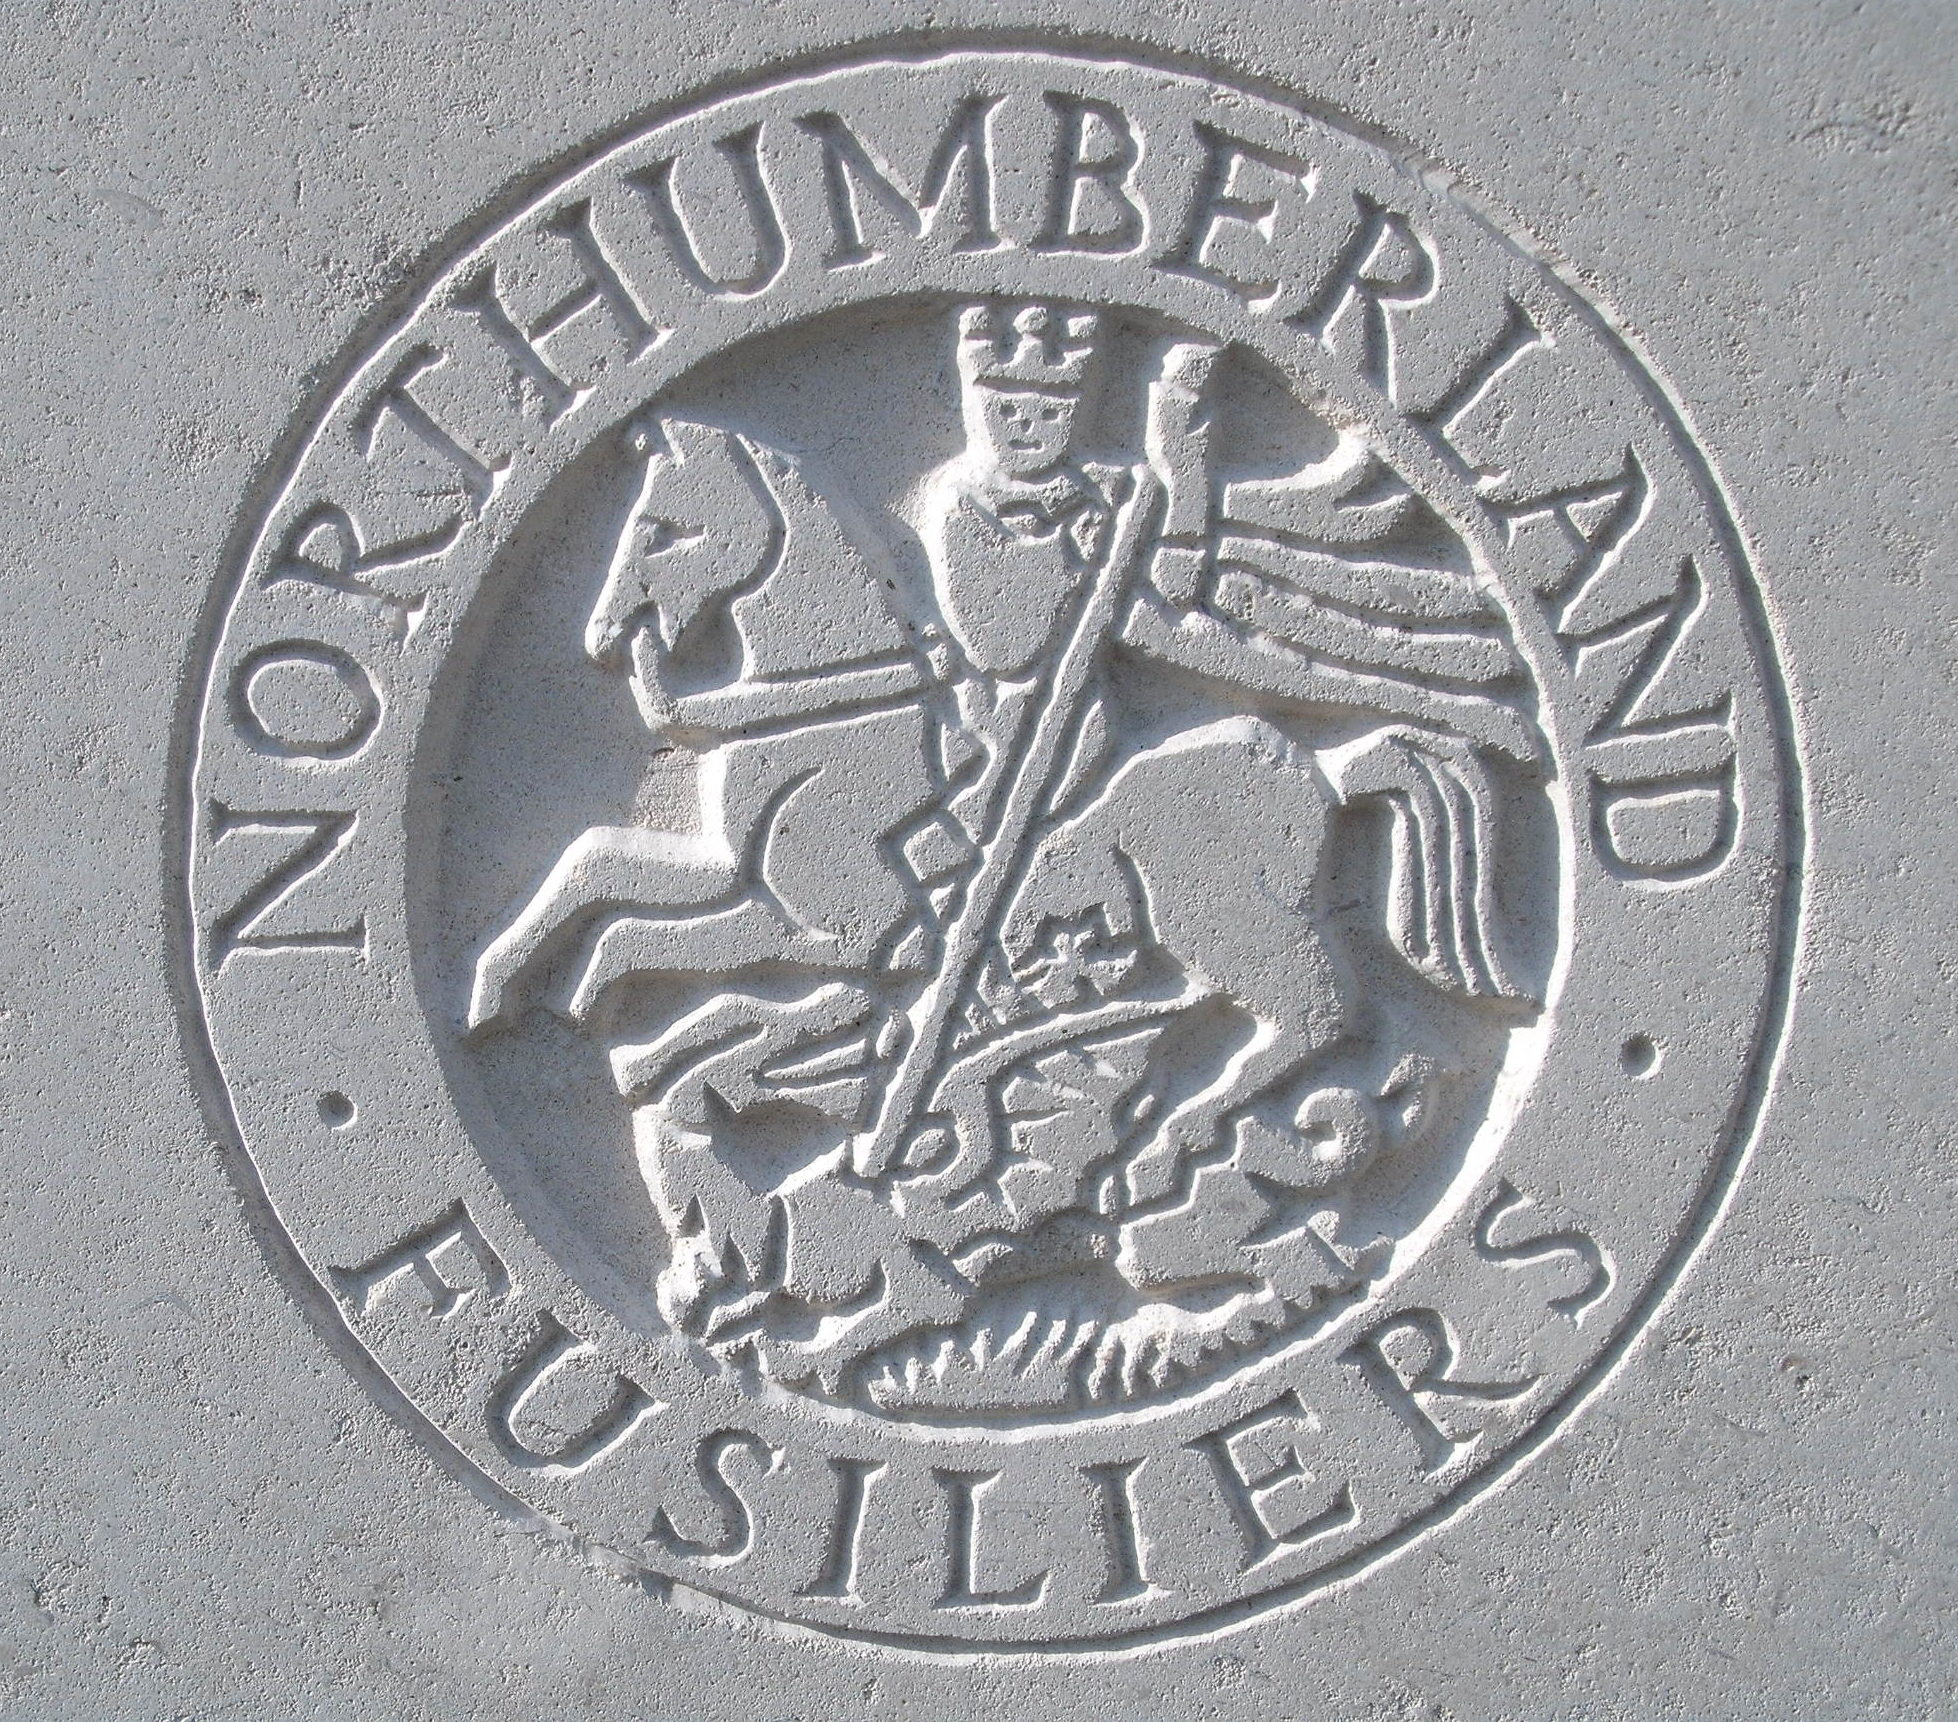 Capbadge of the Northumberland Fusiliers